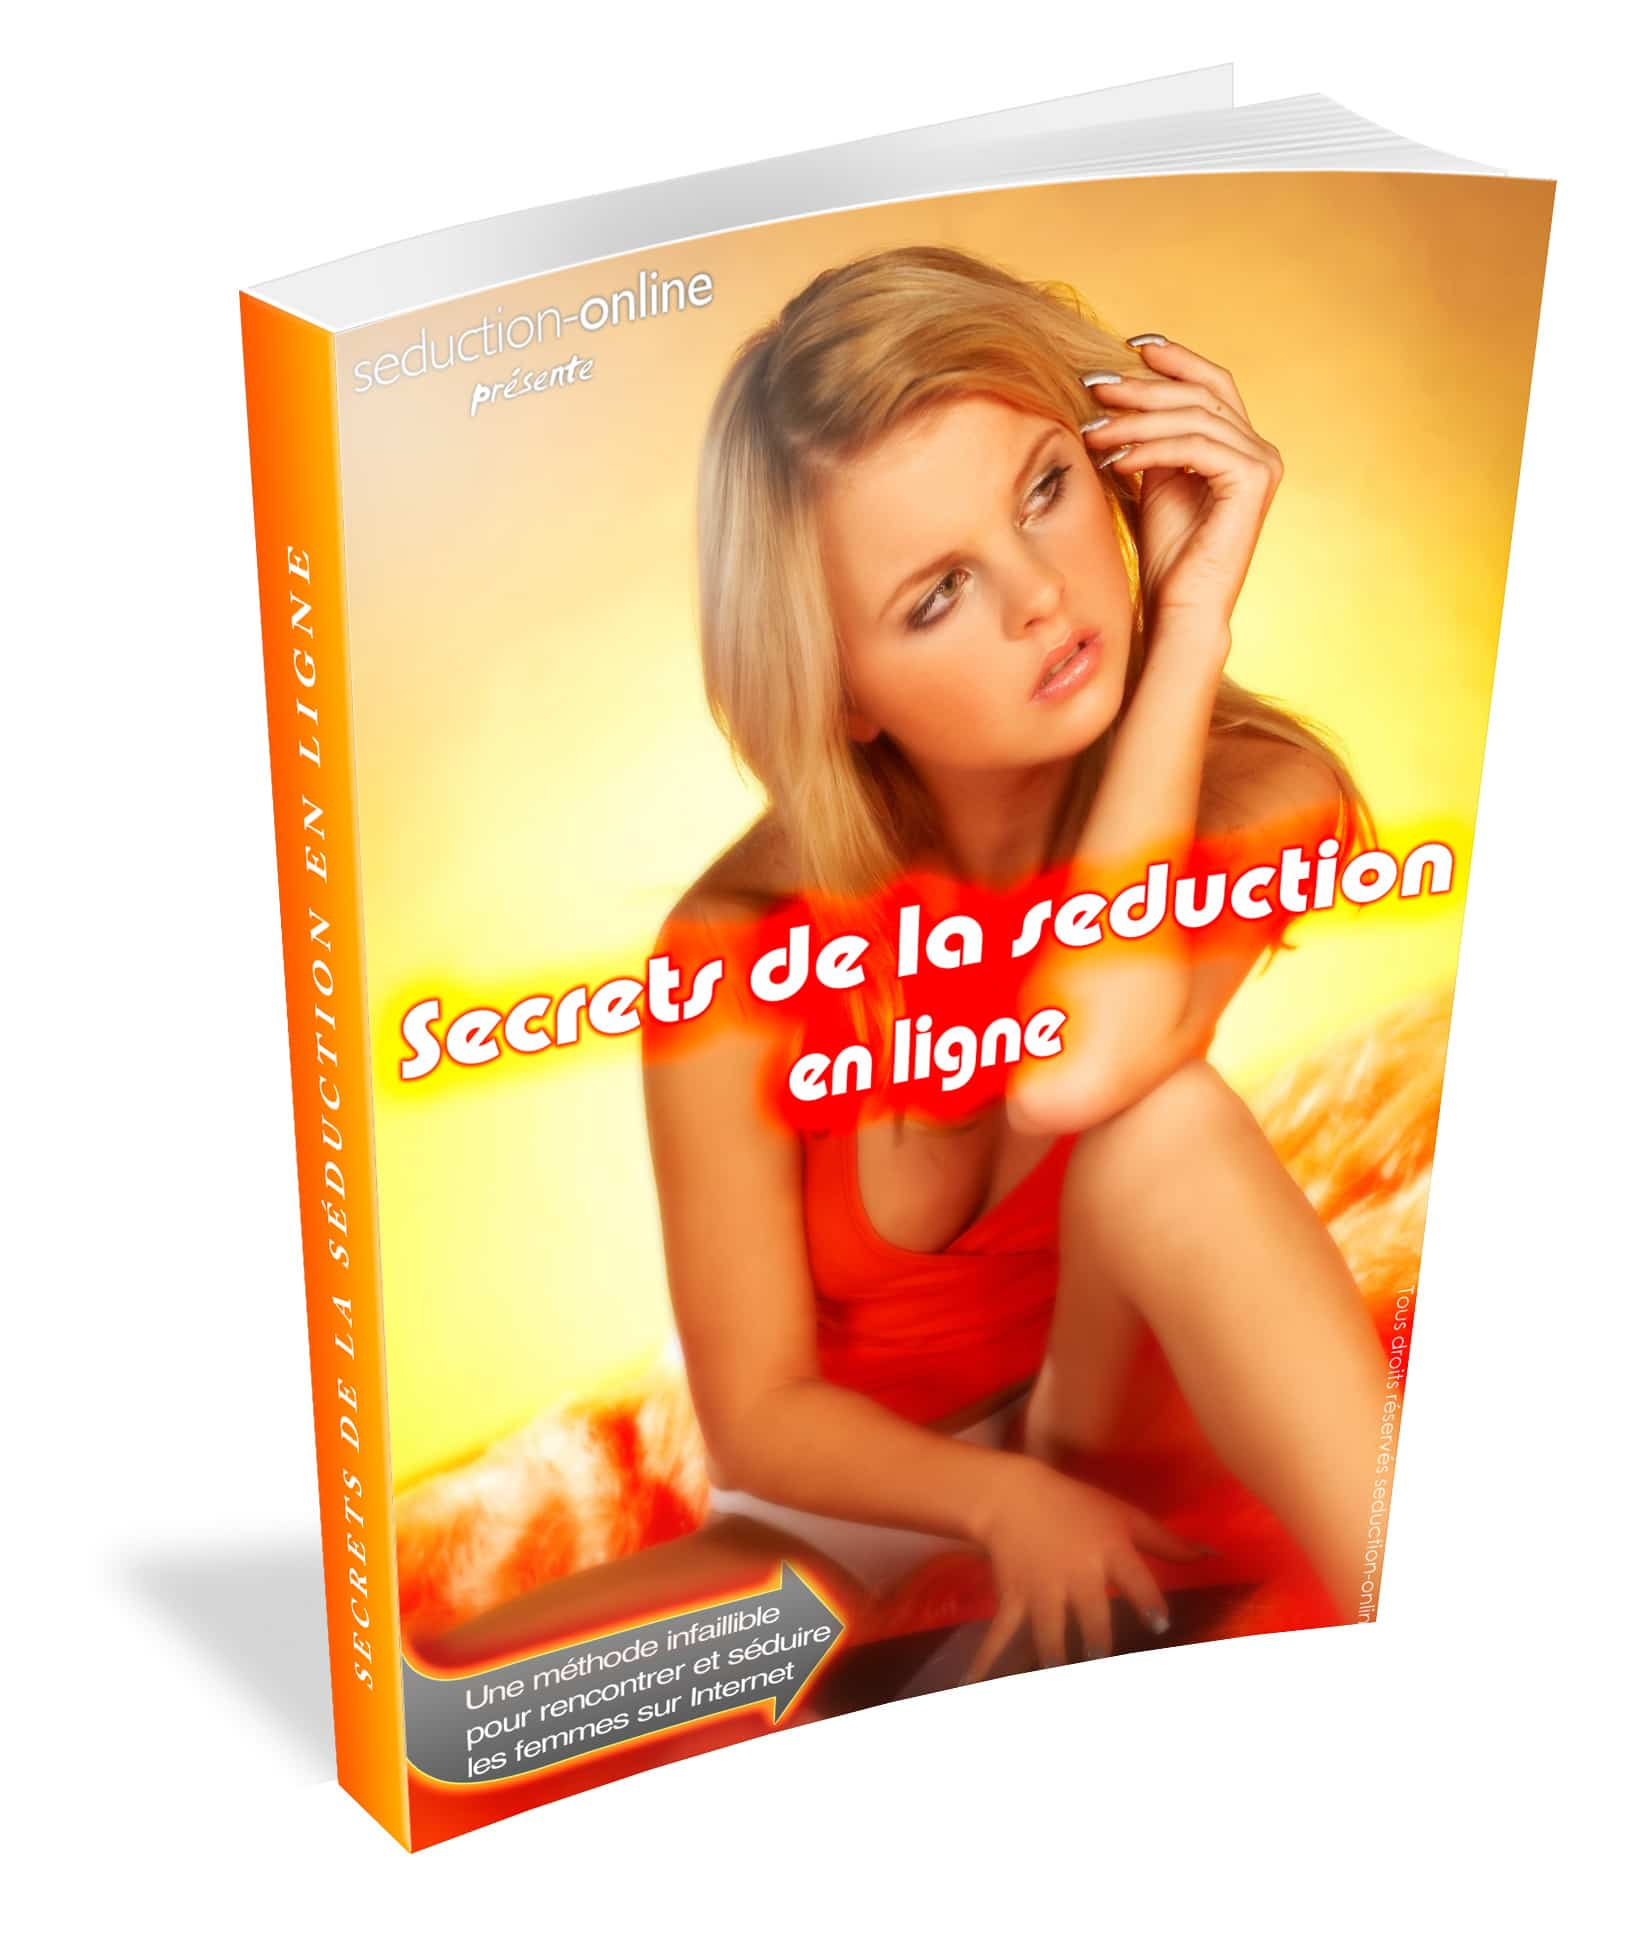 tchat rencontre ado gratuit sans inscription Vaulx-en-Velin